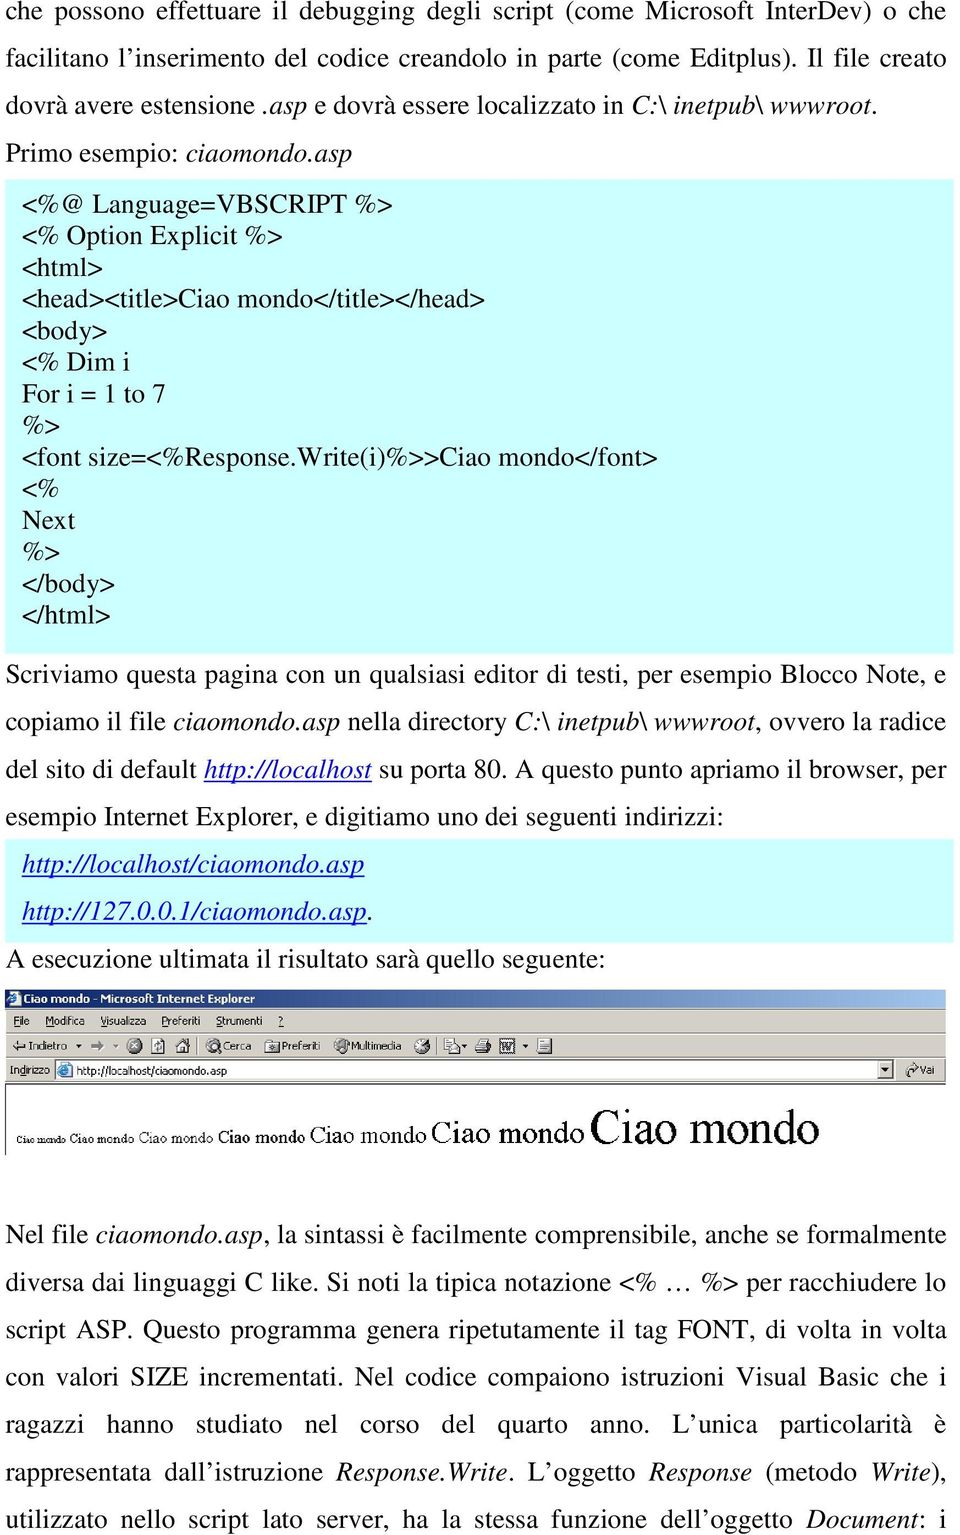 asp <%@ Language=VBSCRIPT <% Option Explicit <html> <head><title>ciao mondo</title></head> <body> <% Dim i For i = 1 to 7 <font size=<%response.